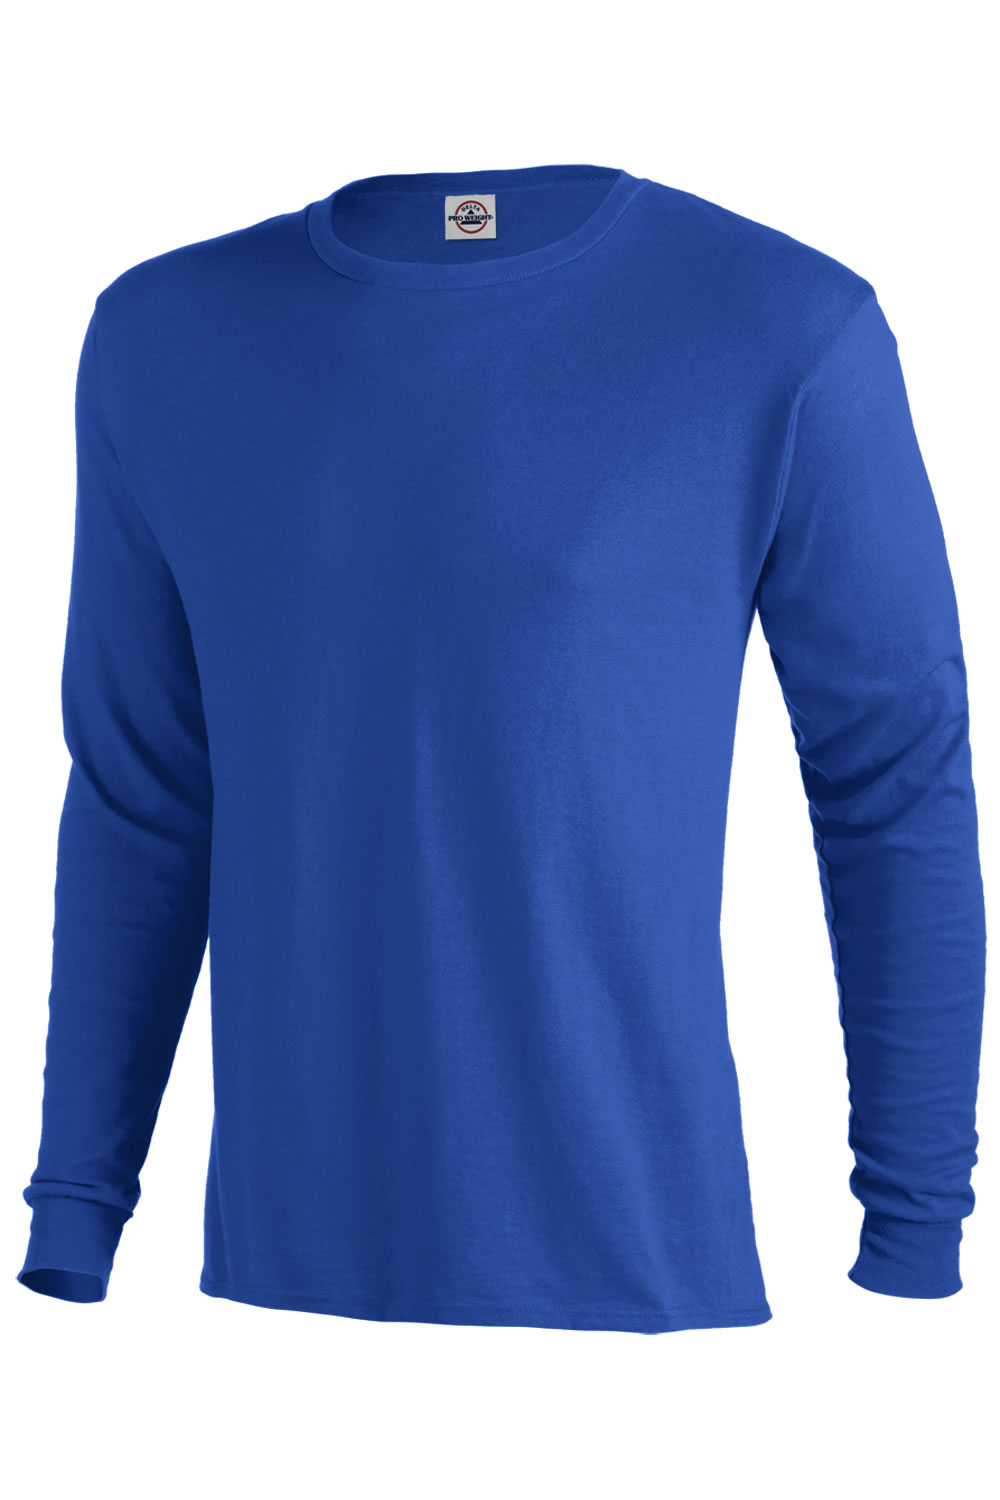 Wholesale clothing apparel directory ask home design for Where to buy blank t shirts in bulk